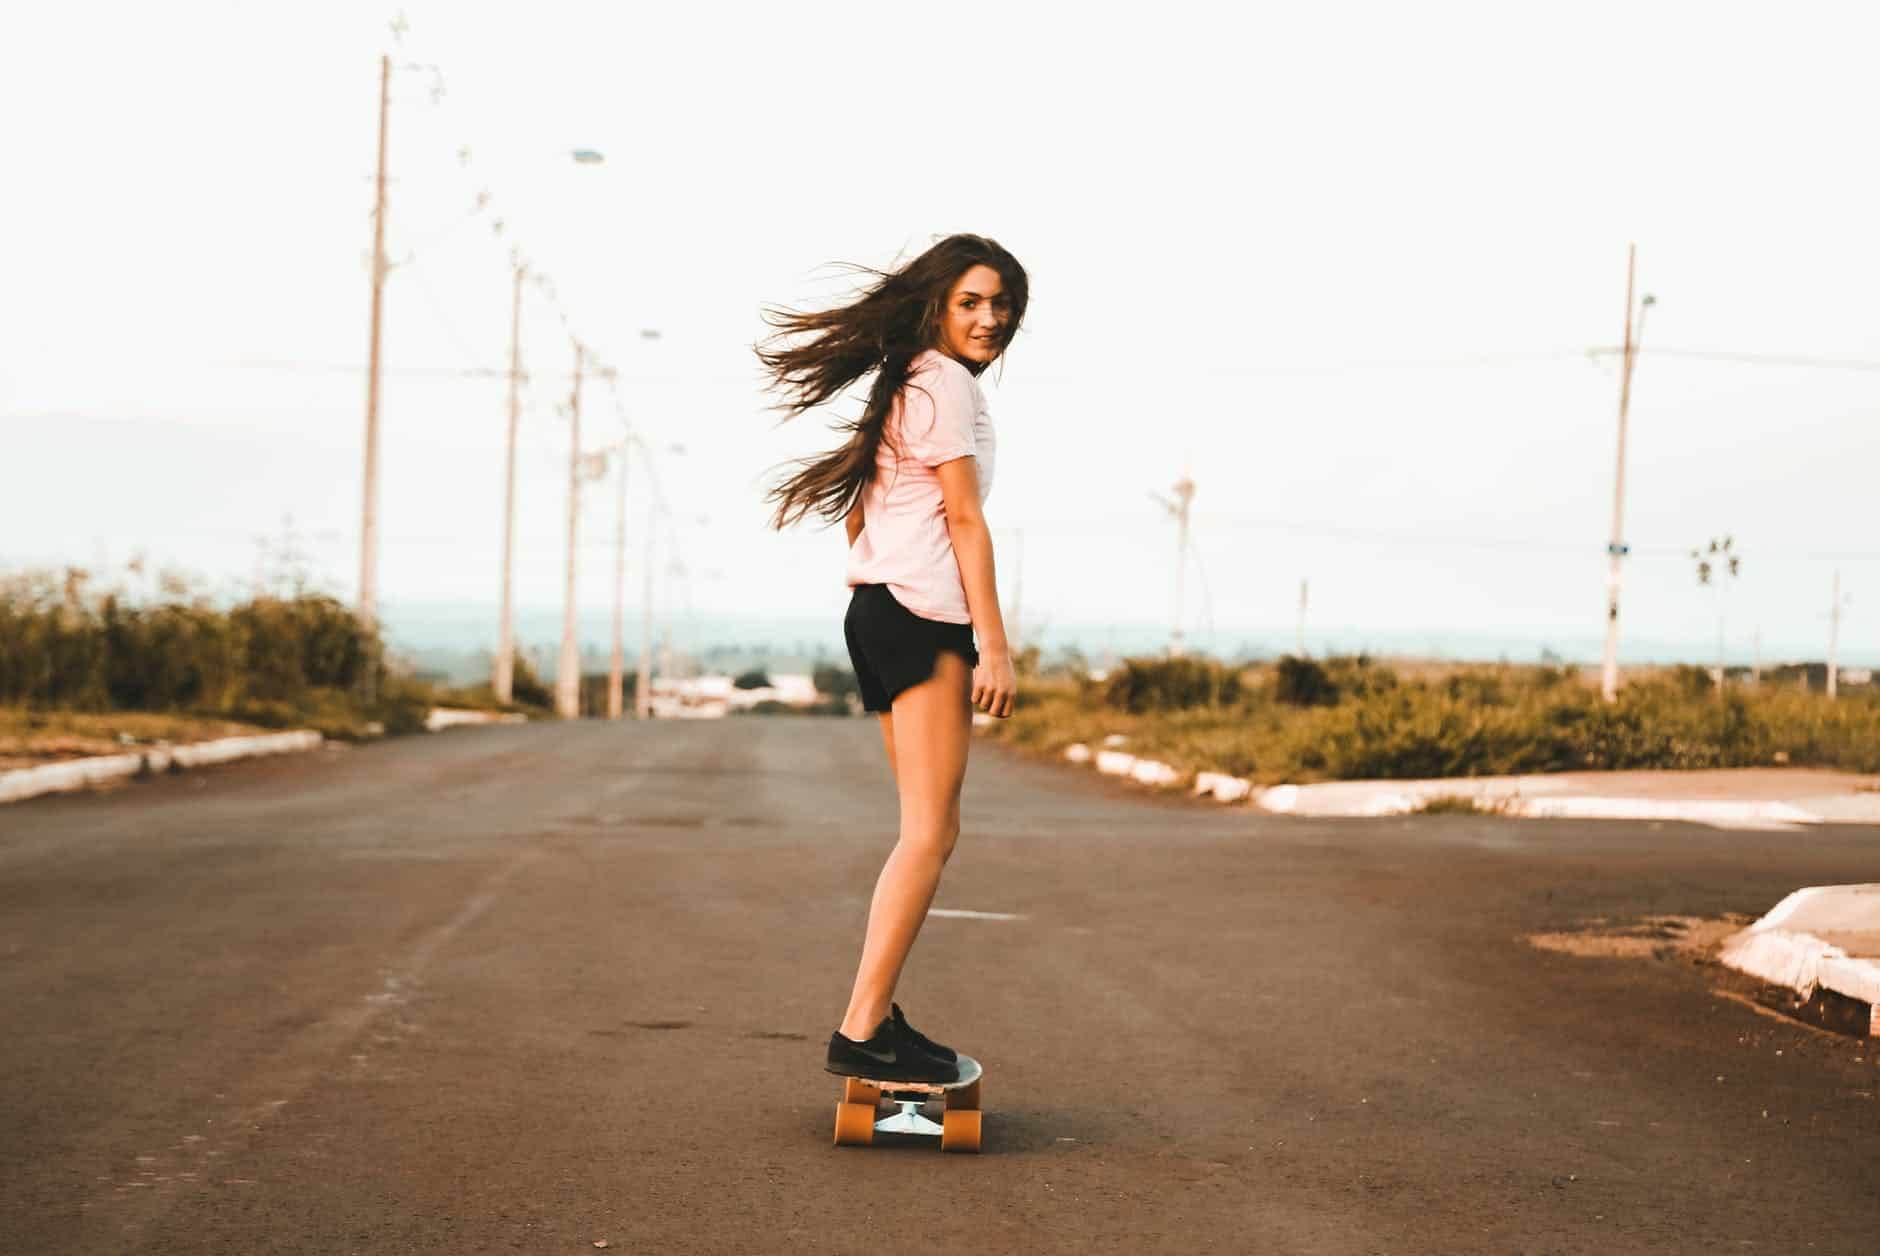 girl riding a revive skateboard on the road